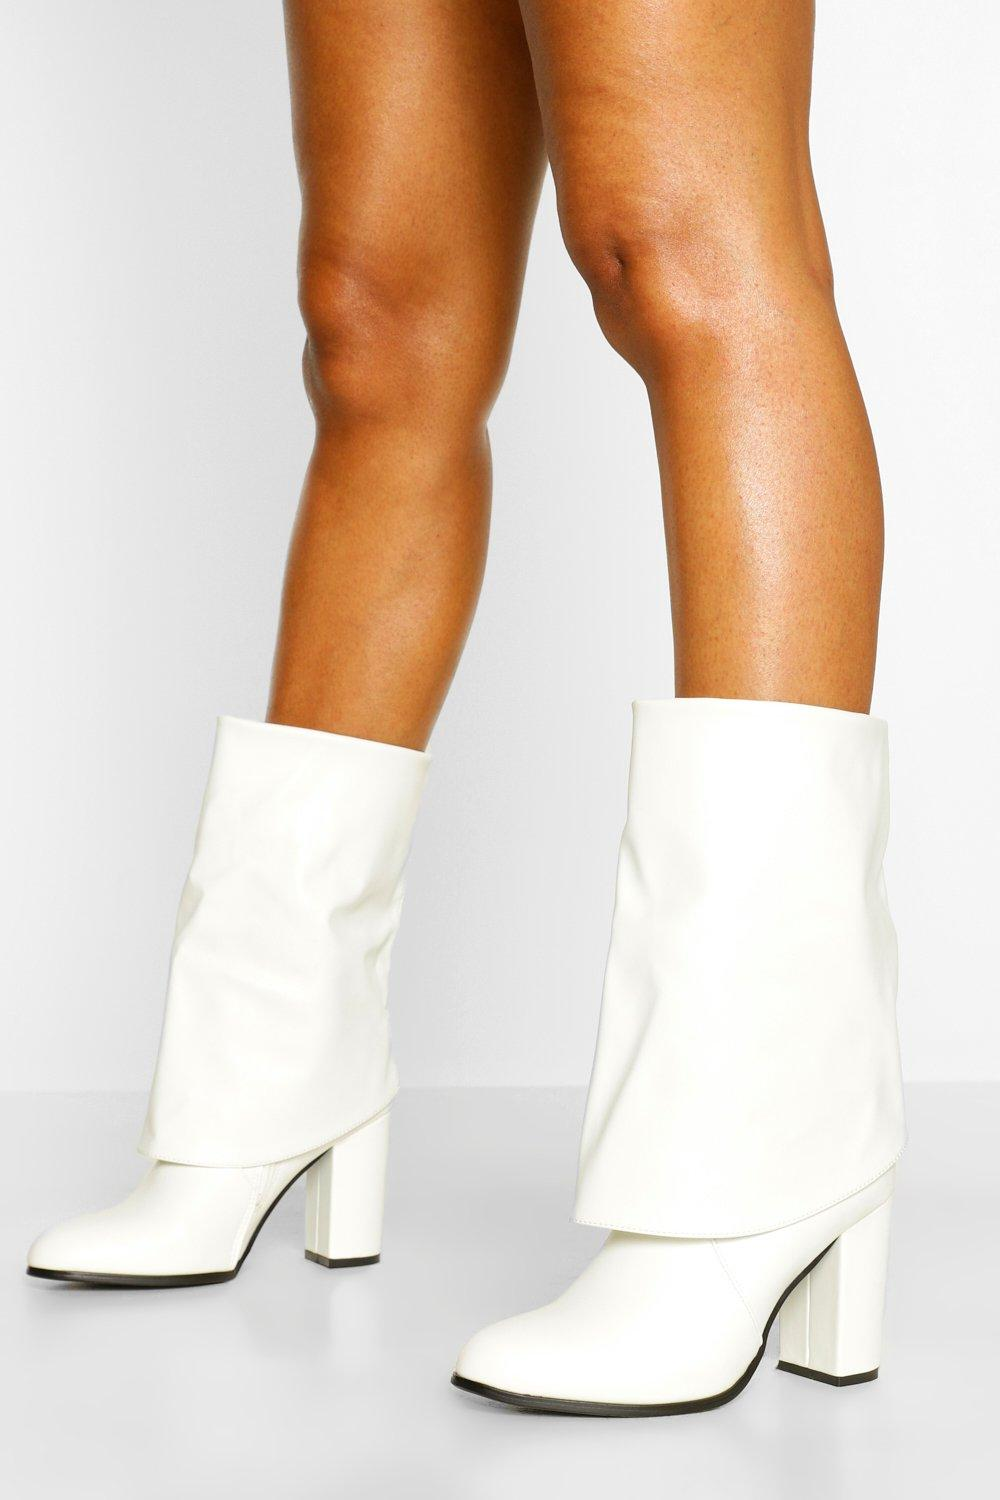 Vintage Boots- Buy Winter Retro Boots Womens Fold Over Block Heel Knee Boots - White - 10 $36.00 AT vintagedancer.com